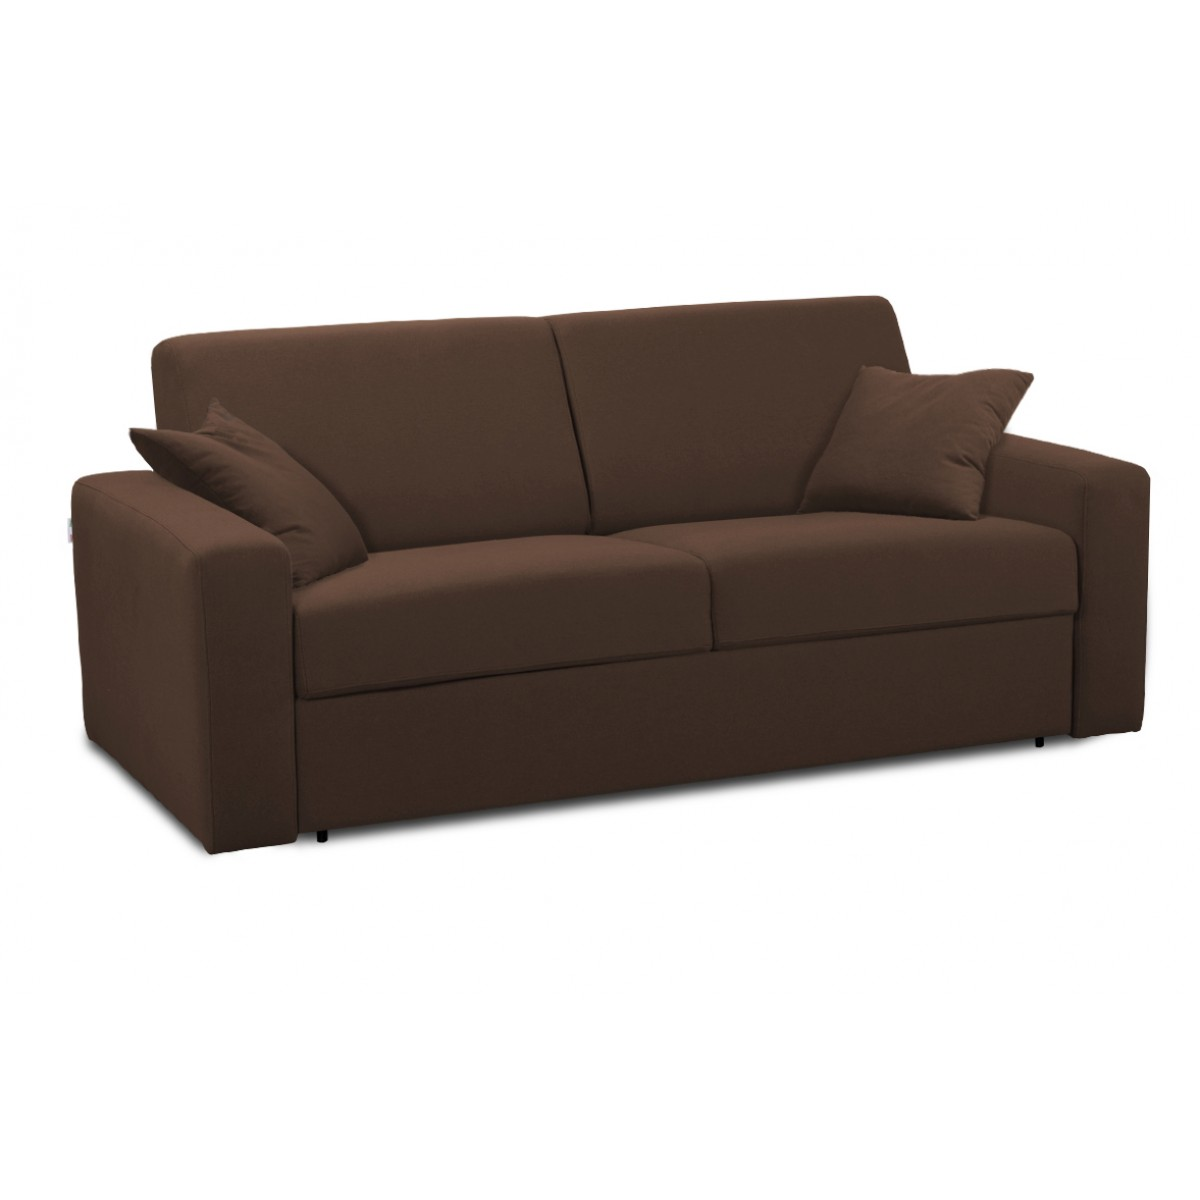 canap convertible 3 places tissu marron couchage 140 x 190 cm nove mooviin. Black Bedroom Furniture Sets. Home Design Ideas